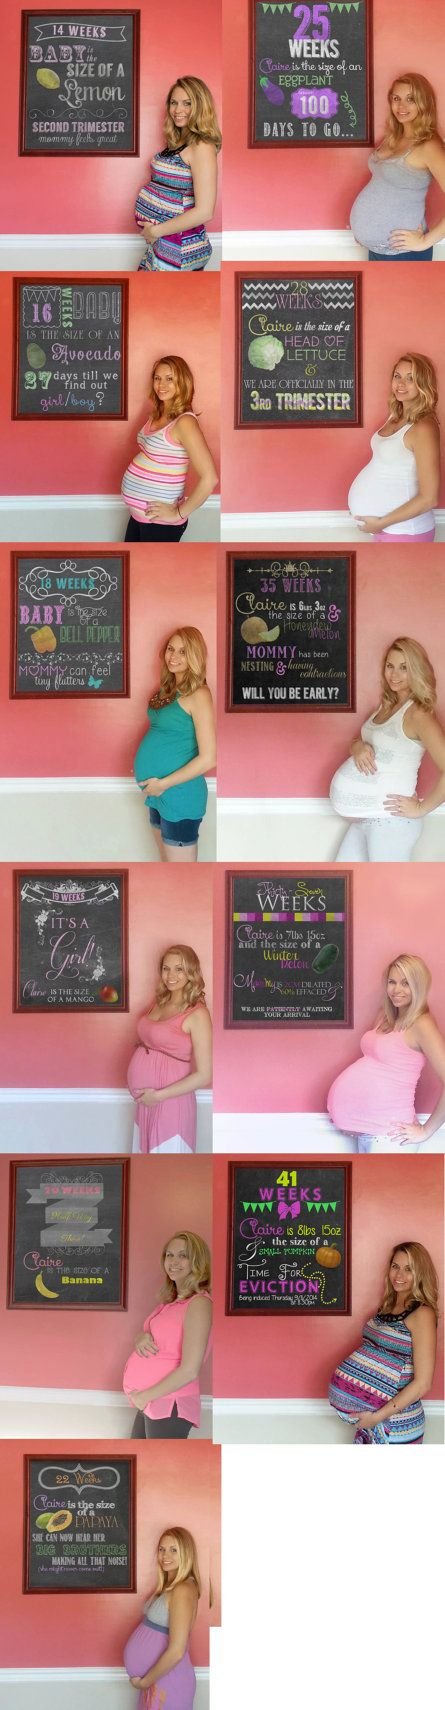 20-40 week Pregnancy Chalkboard Updates by CayteeRoseDesigns